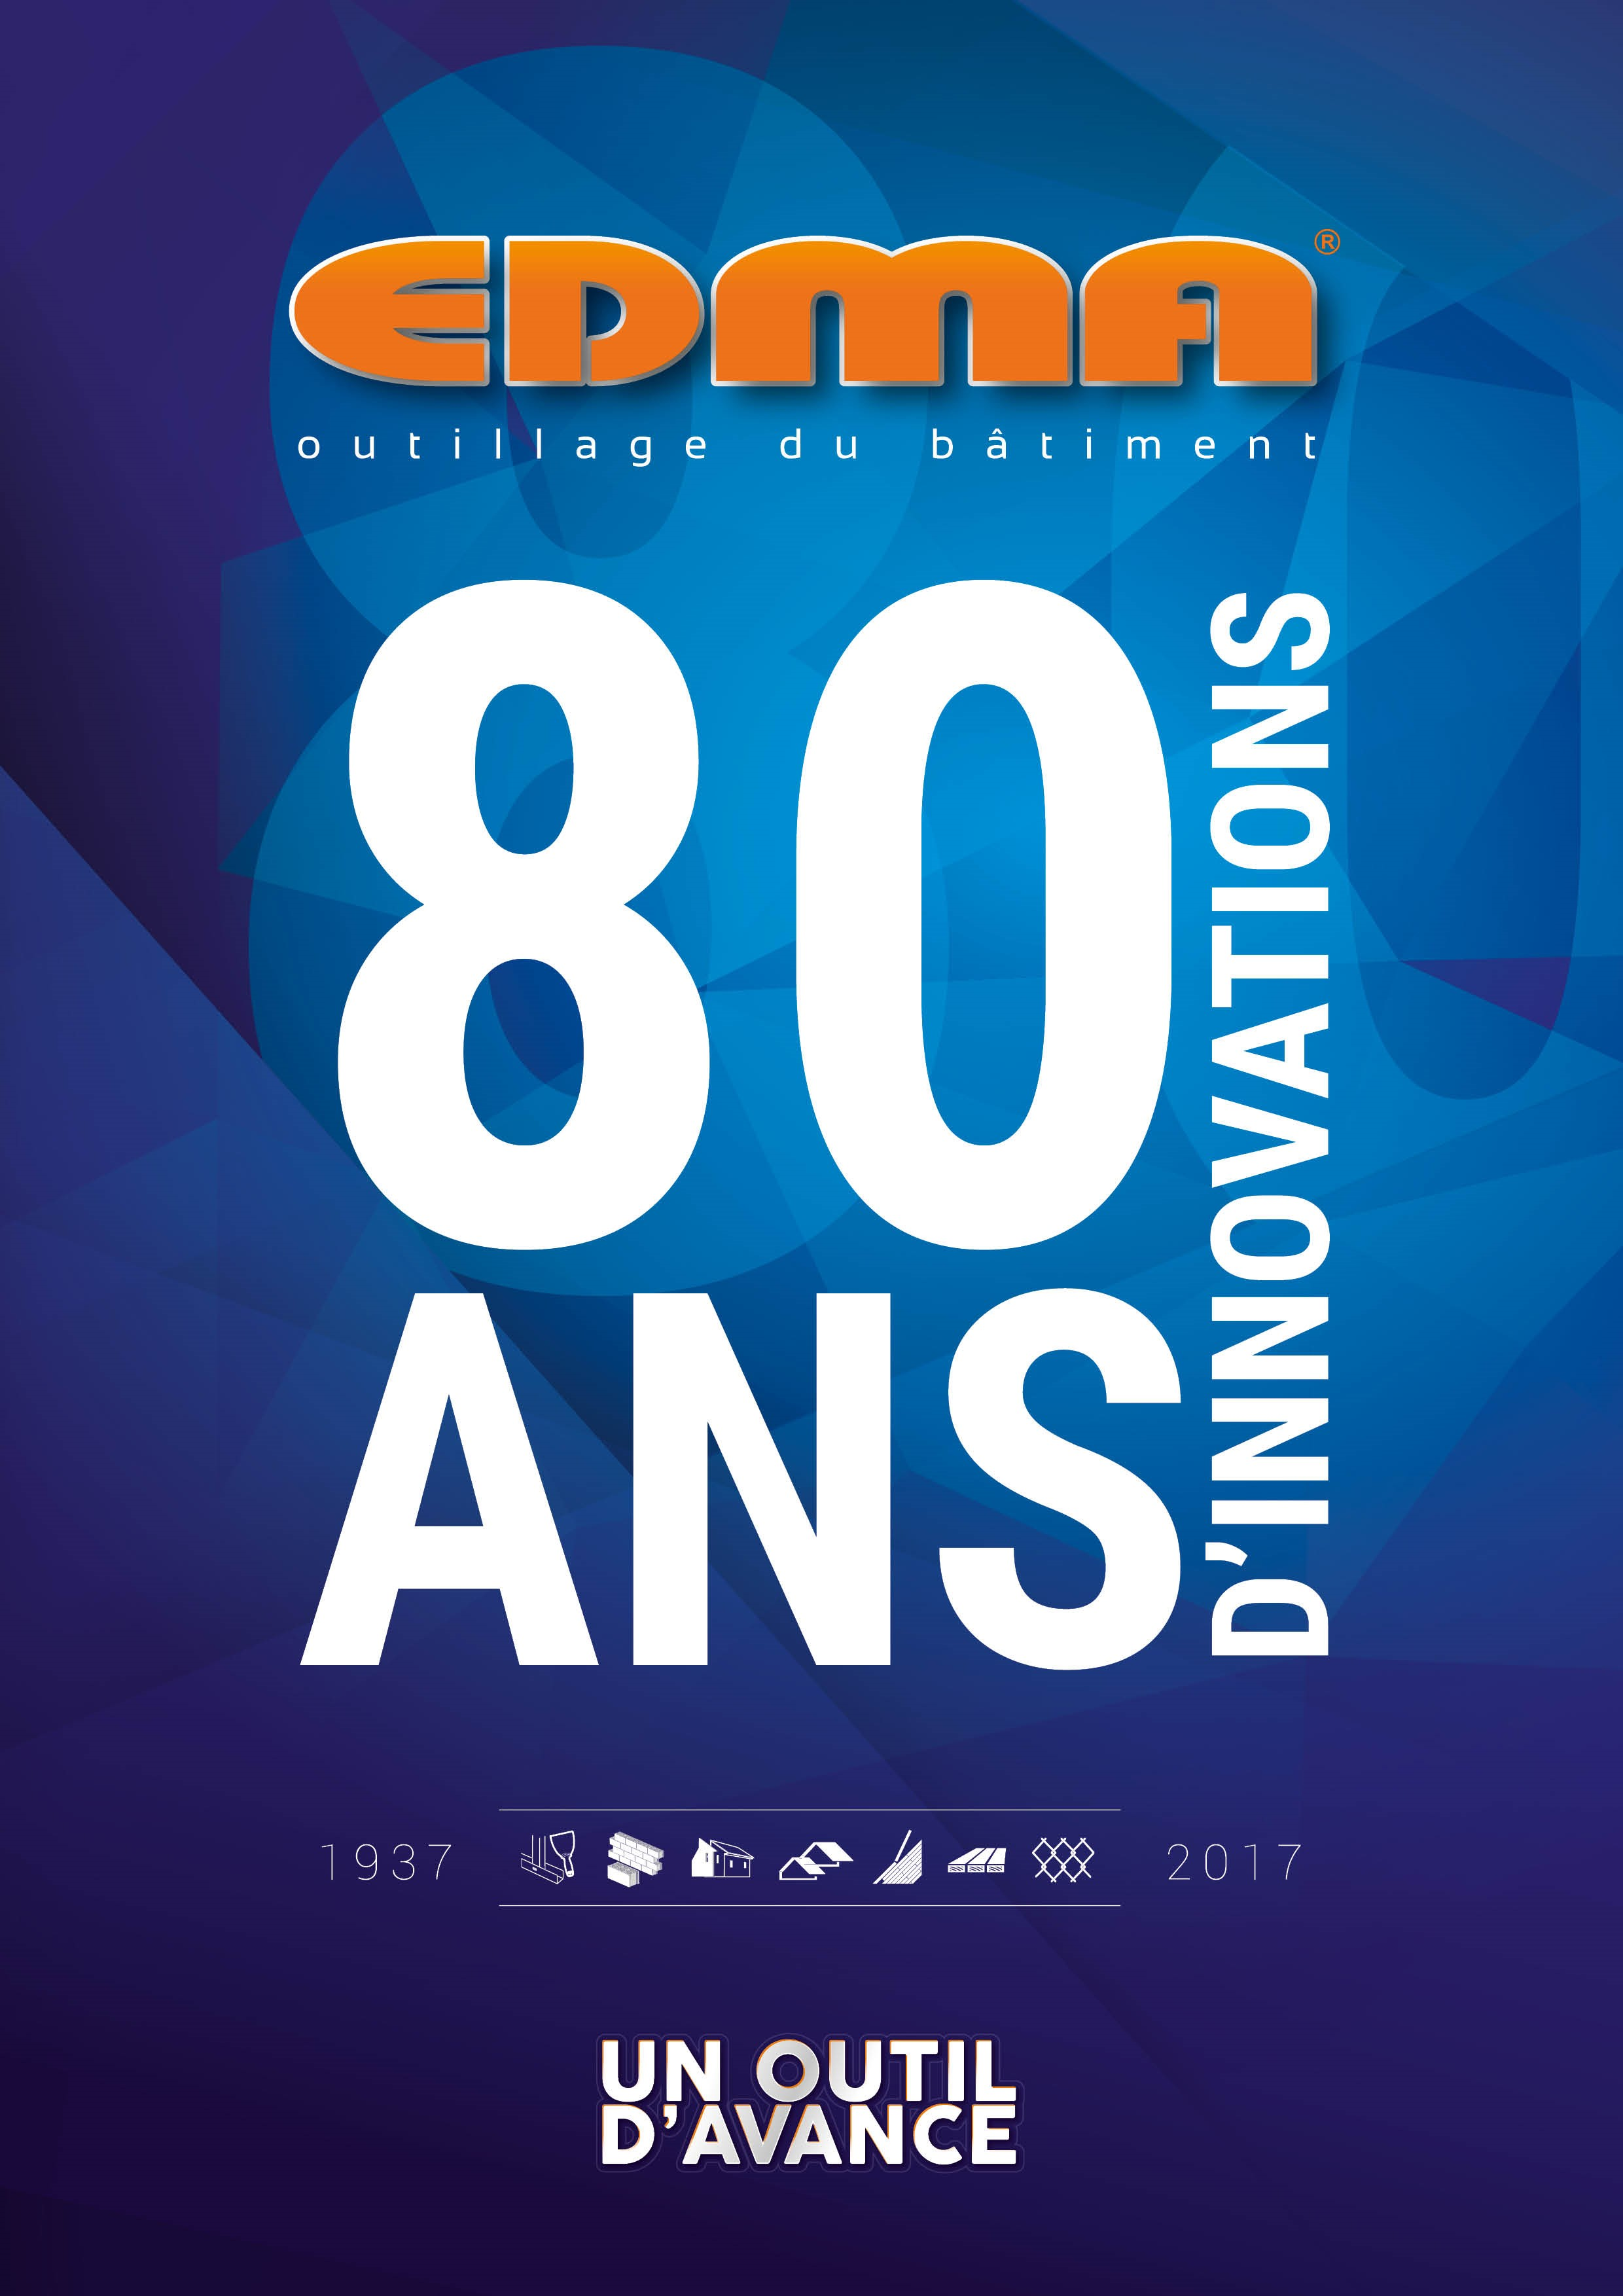 EDMA® Outillage - 80 ans d'innovations